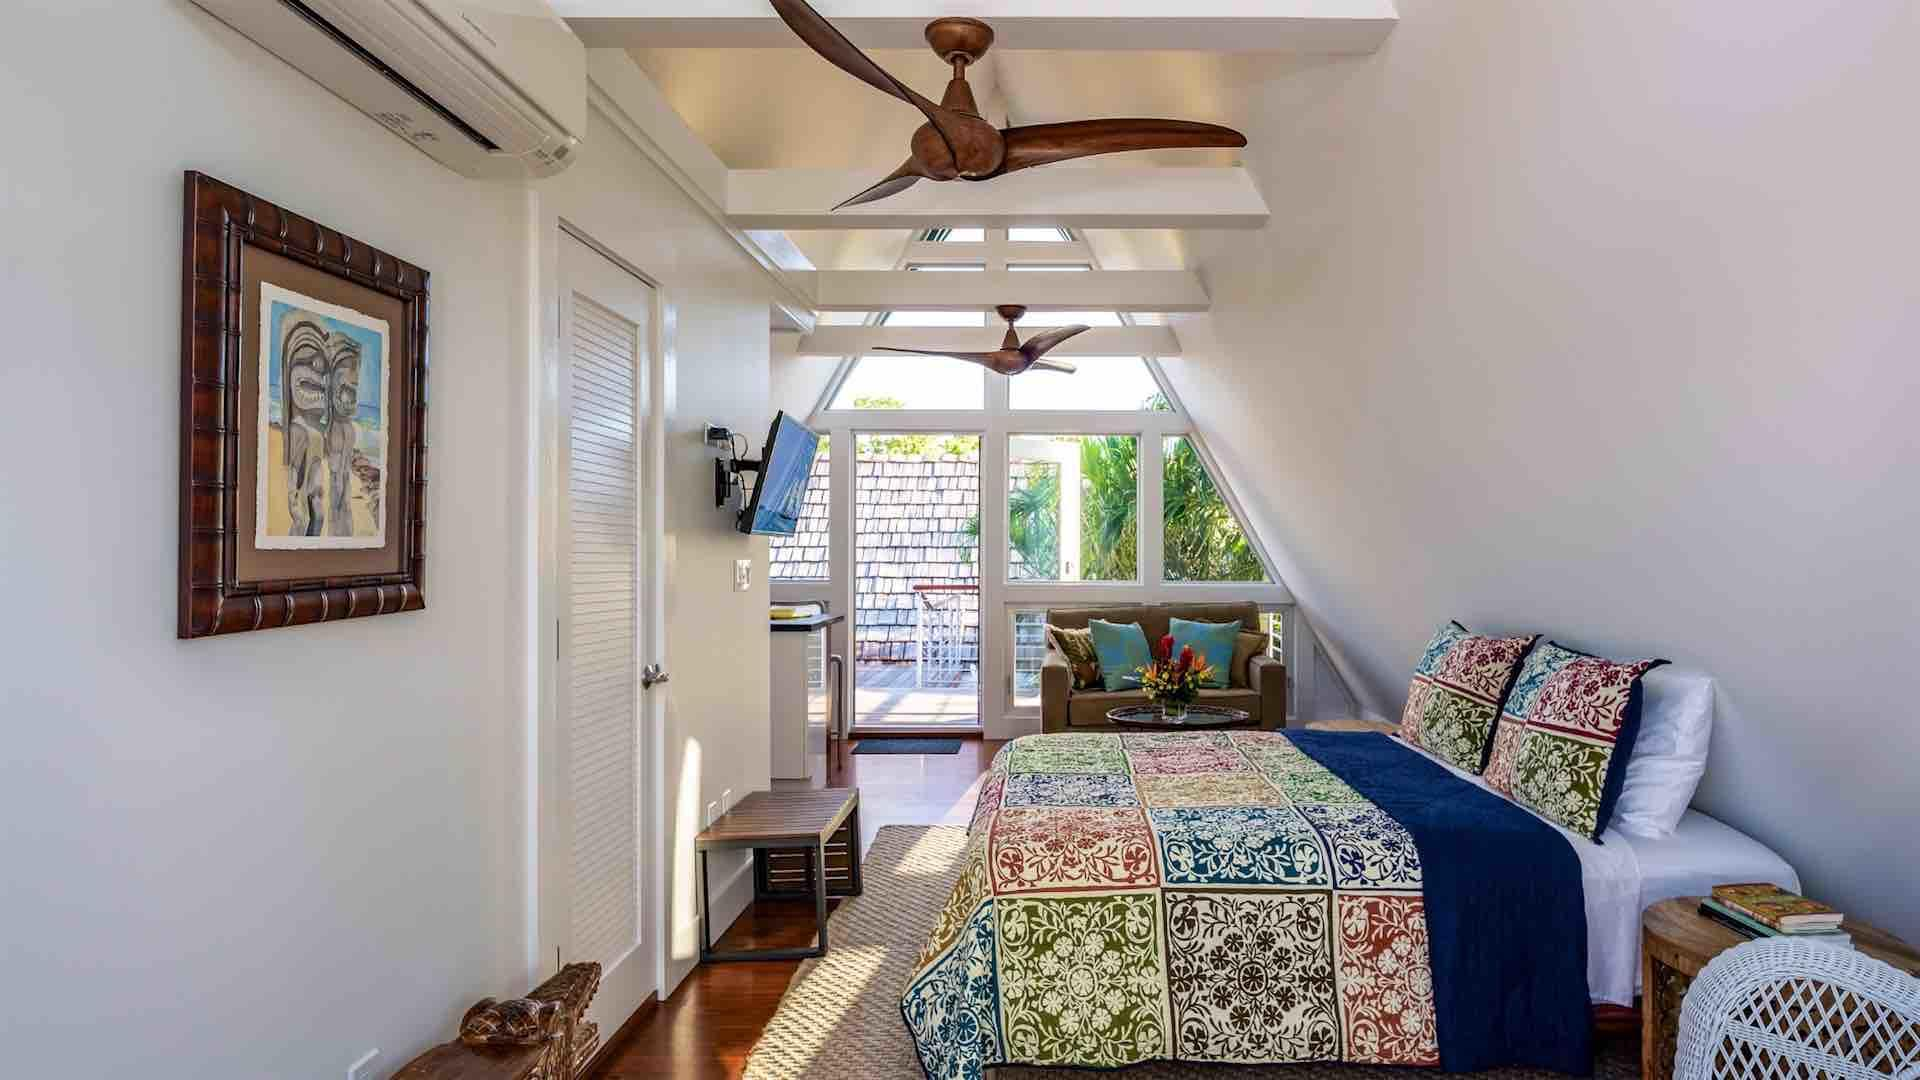 The fourth bedroom has a Queen bed and overhead fans...